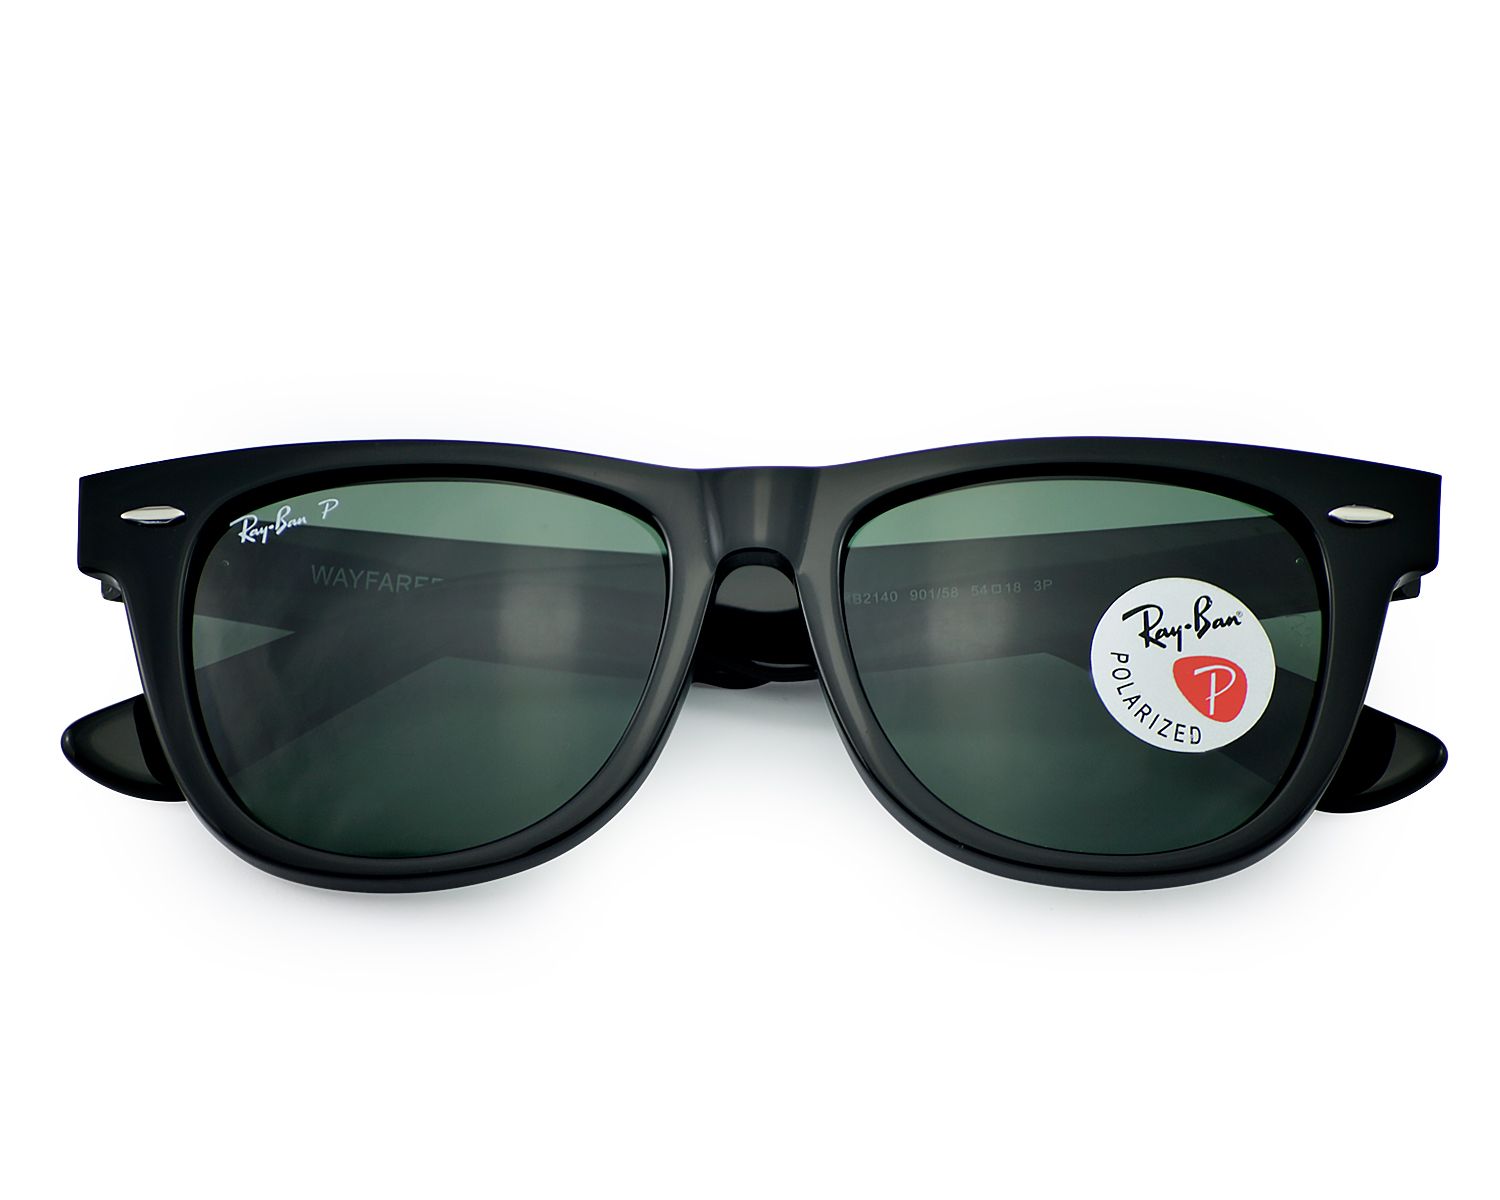 c943d32f9e9 Ray Ban RB2140 901 58 Original Wayfarer Classics Black Frame  Polarized  Green Classic G-15 lenses Sunglasses 54mm